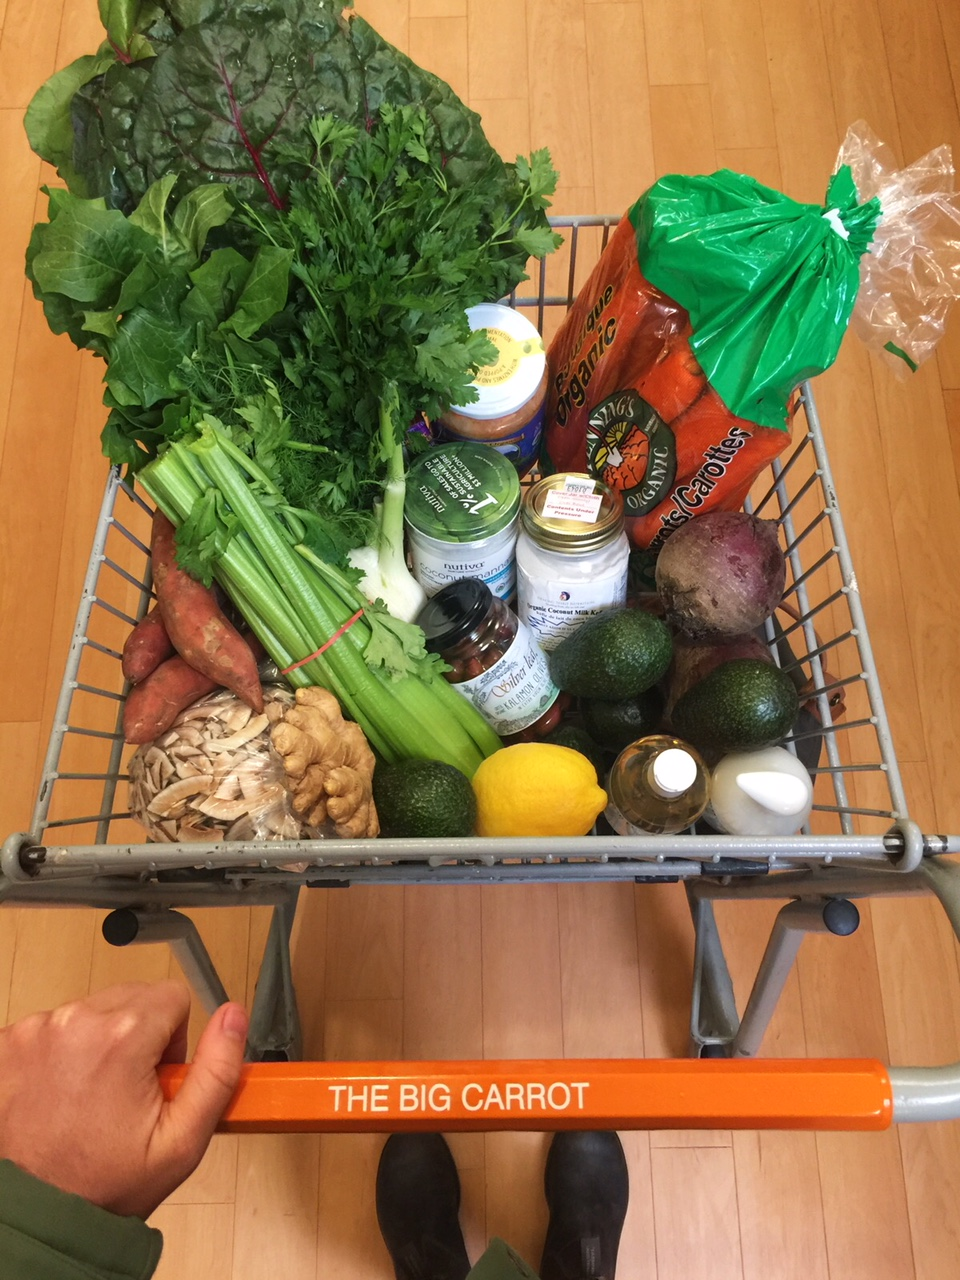 The haul from my Day 7 grocery shop, which i carried home on my bicycle... after 165 hours without food!